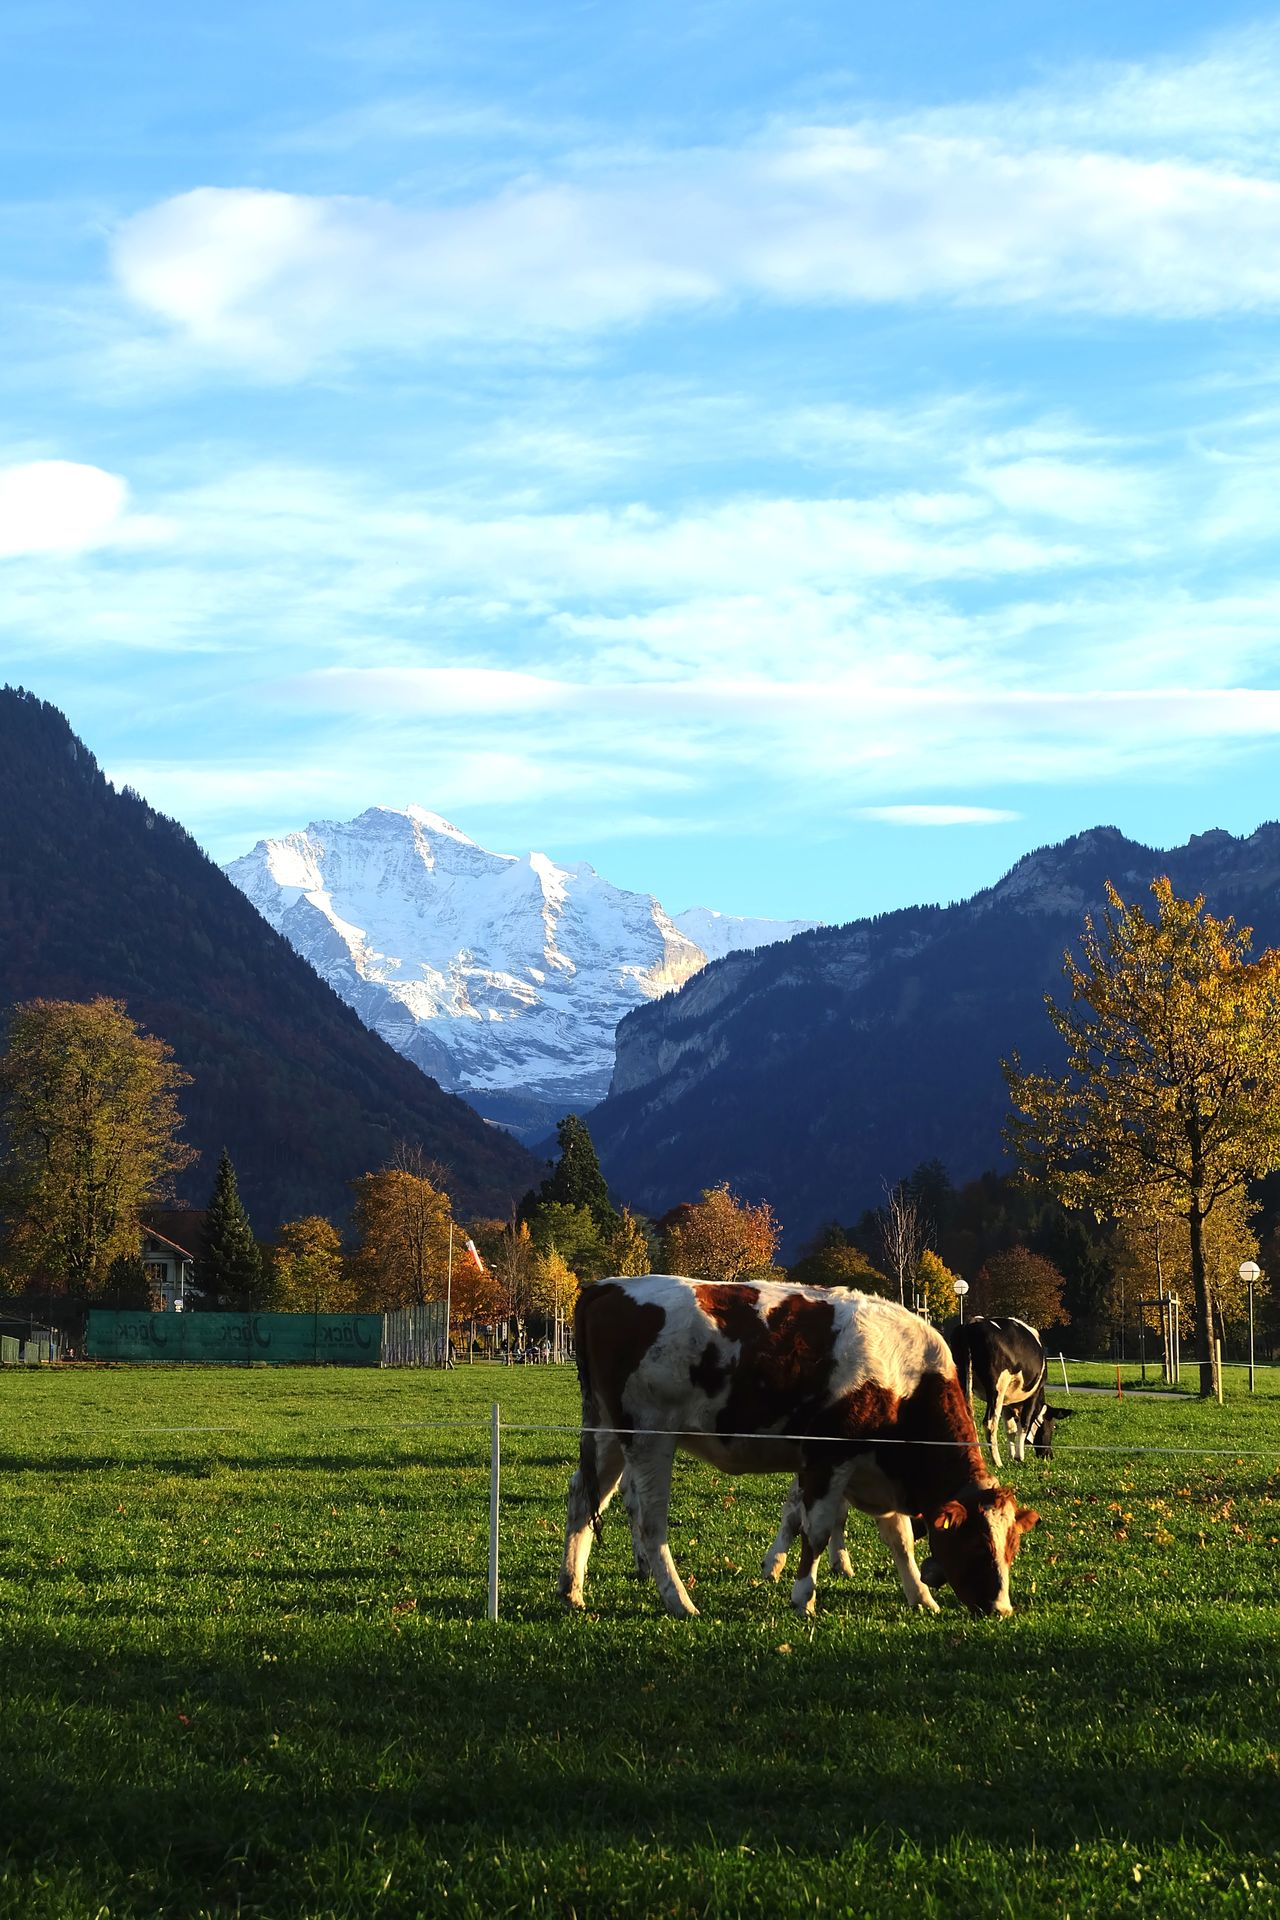 Blue Sky Cow Cows Interlaken Jungfrau Landscape Mountain Range Sky Switzerland